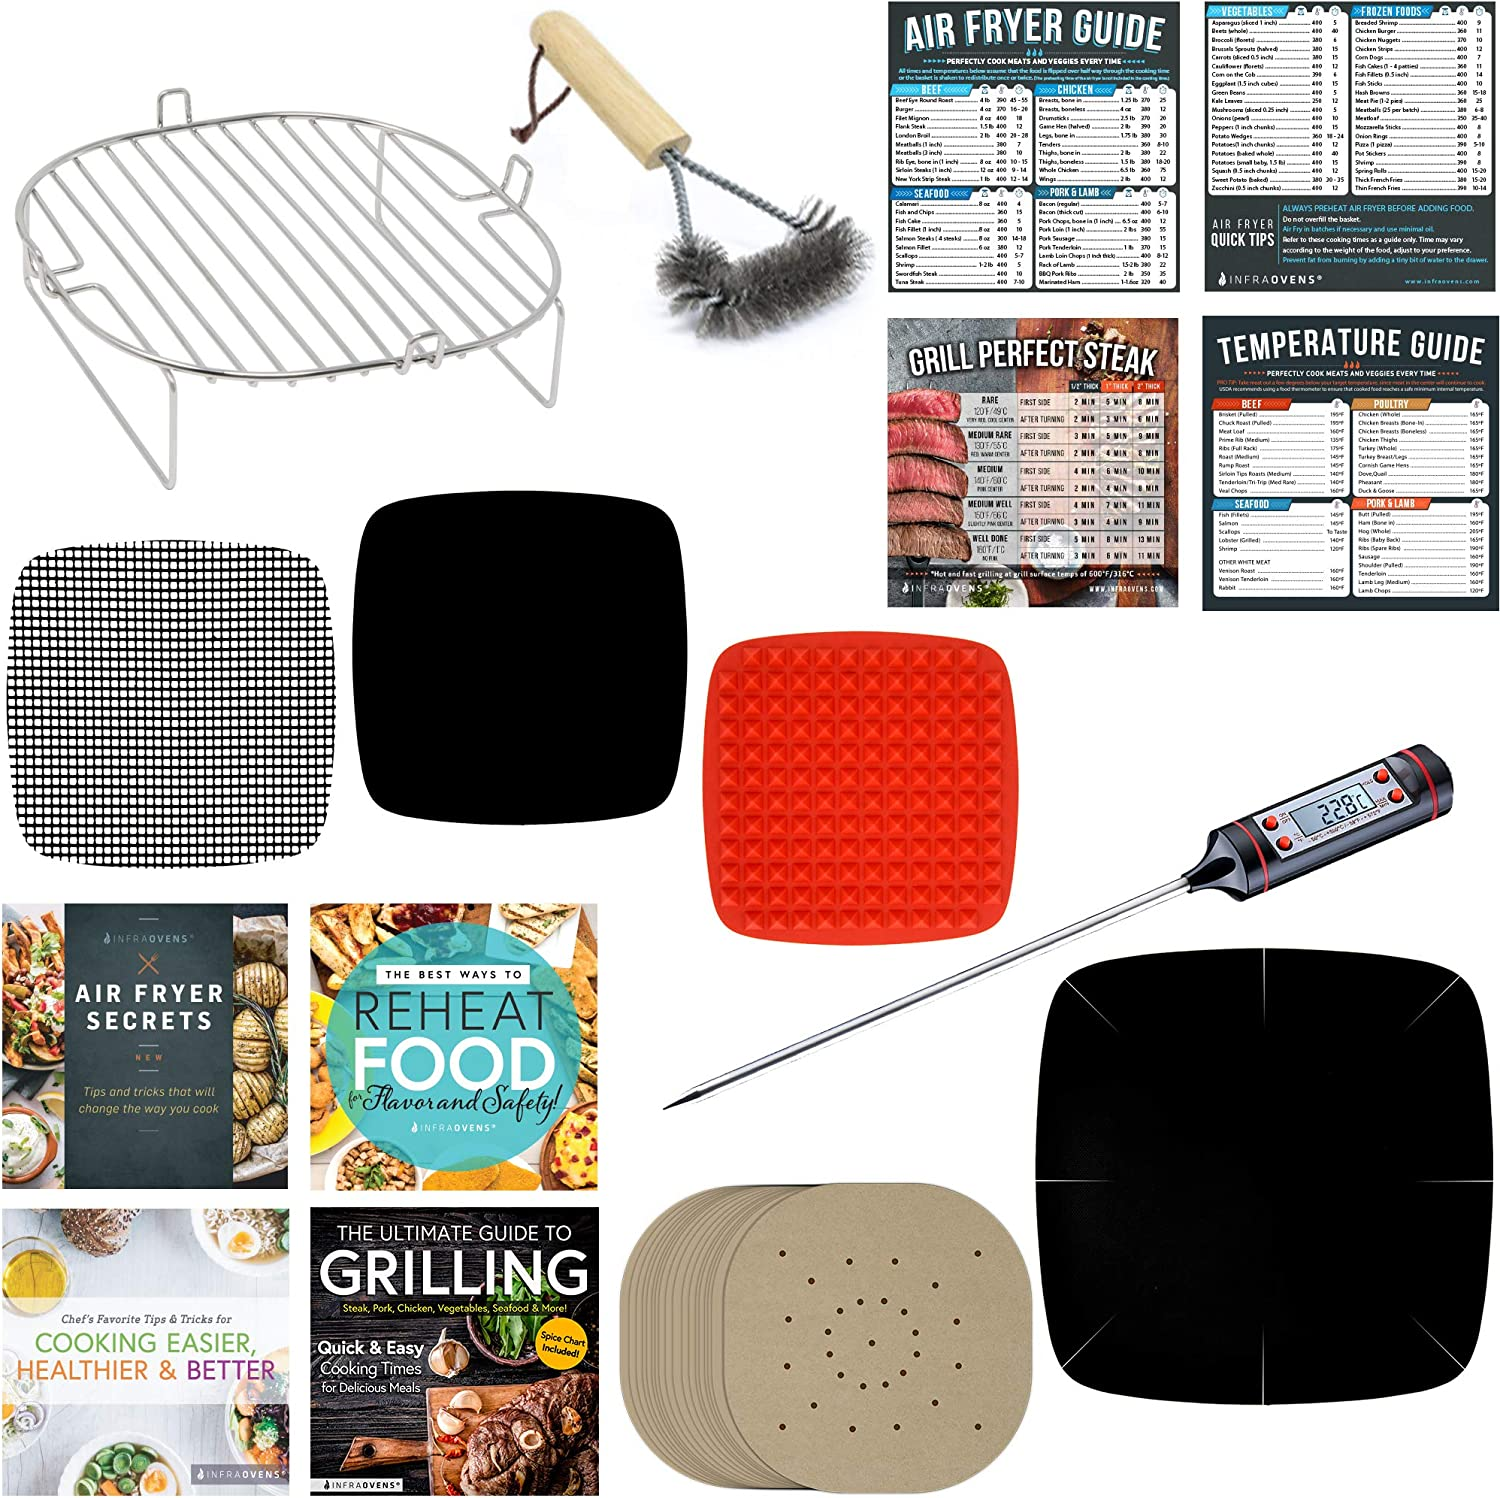 Air Fryer Rack Accessories Compatible Chefman, Cosori, Habor, GoWise, Maxi-Matic, NuWave Brio, Cozyna, CalmDo, BCP, Zokop +More | Paper Liners, Cooking Times Magnetic Cheat Sheets